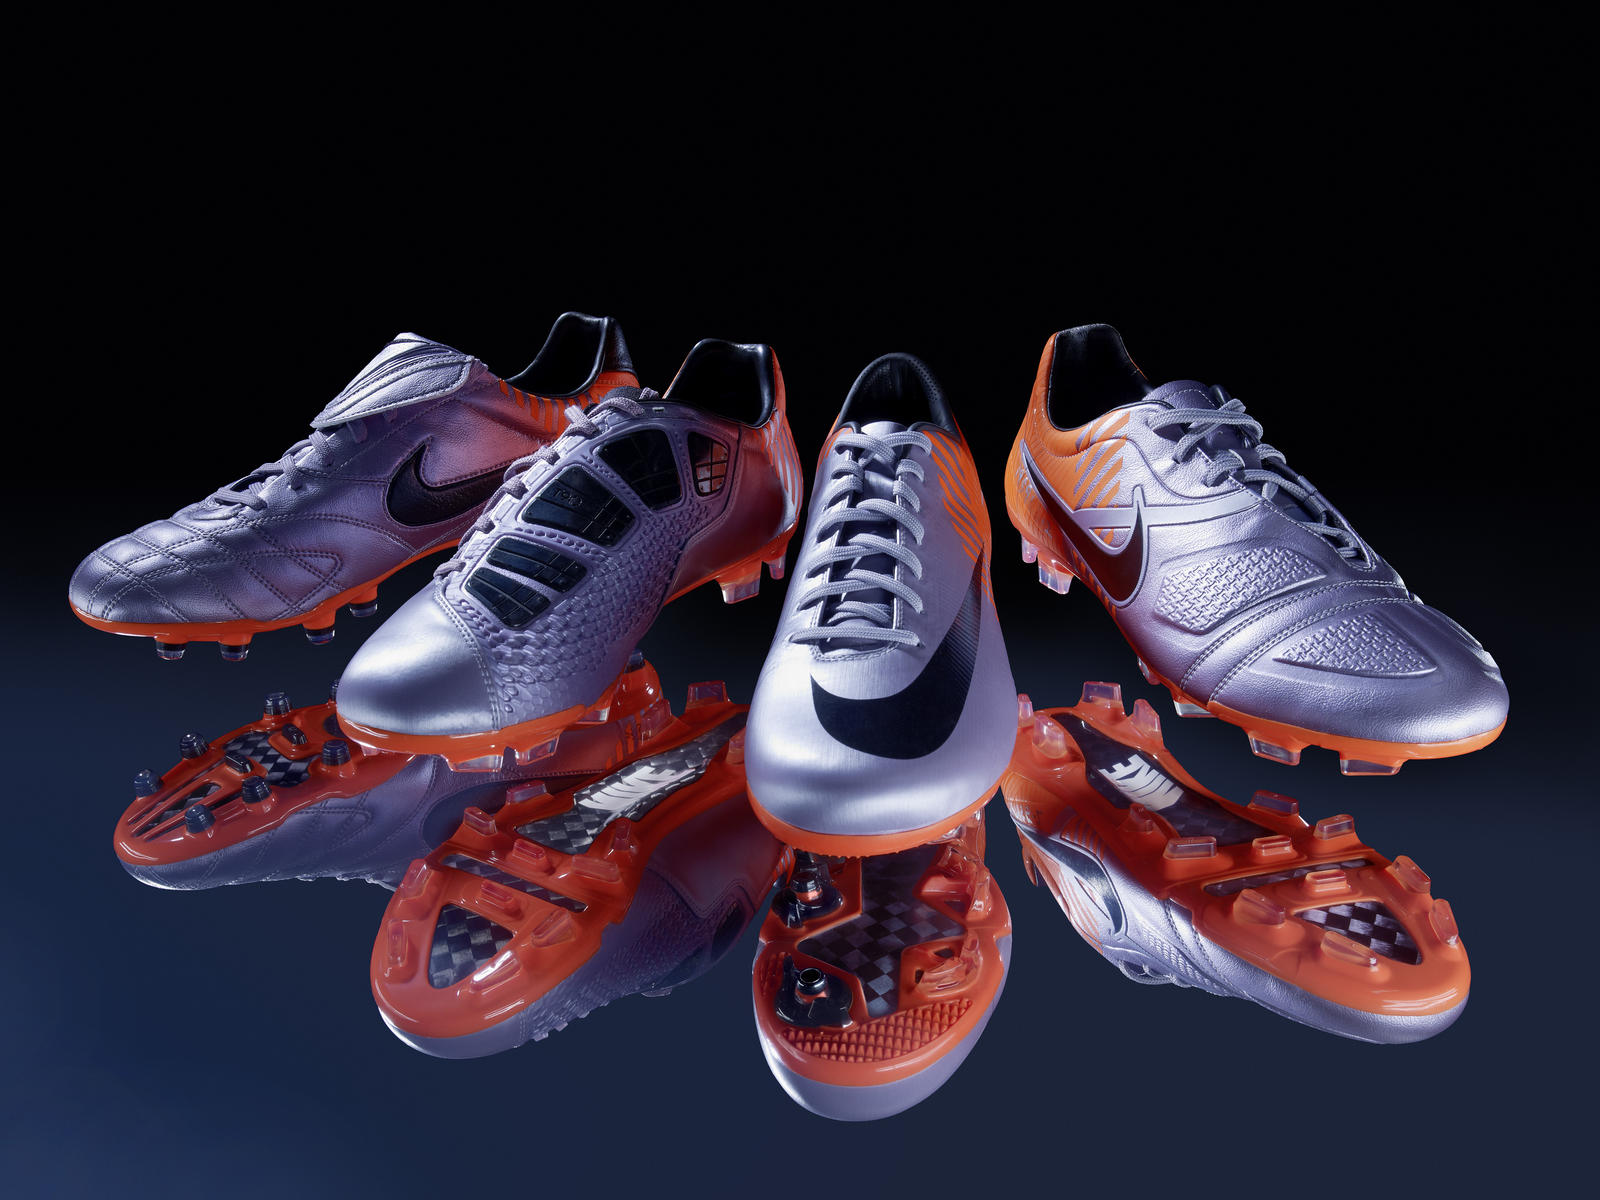 newest 53dce 9e5f7 2010-nike-football-history-elite-pack